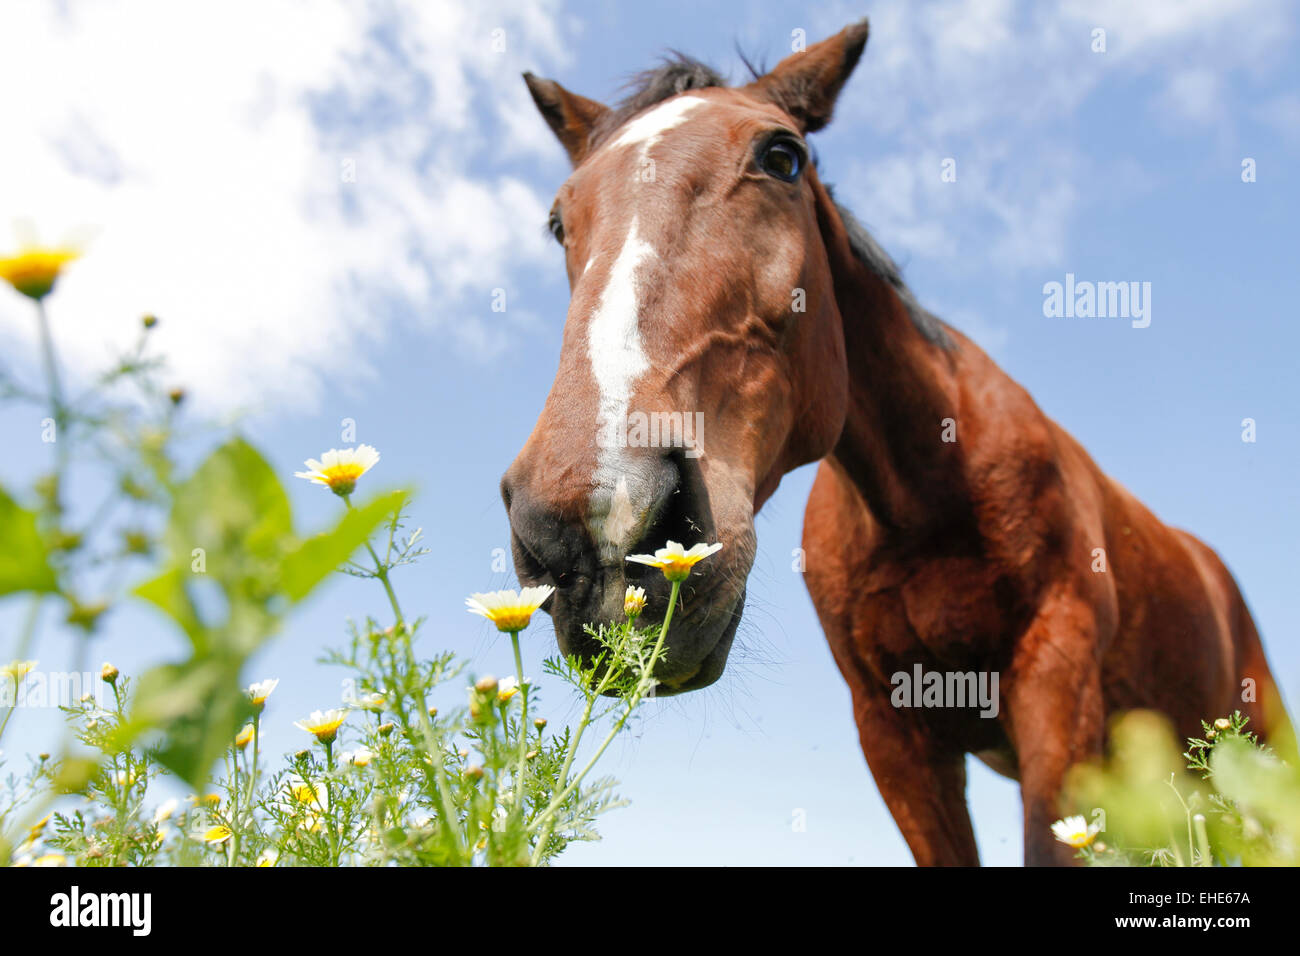 Borwn horse grazing at flowers viewed from below - Stock Image